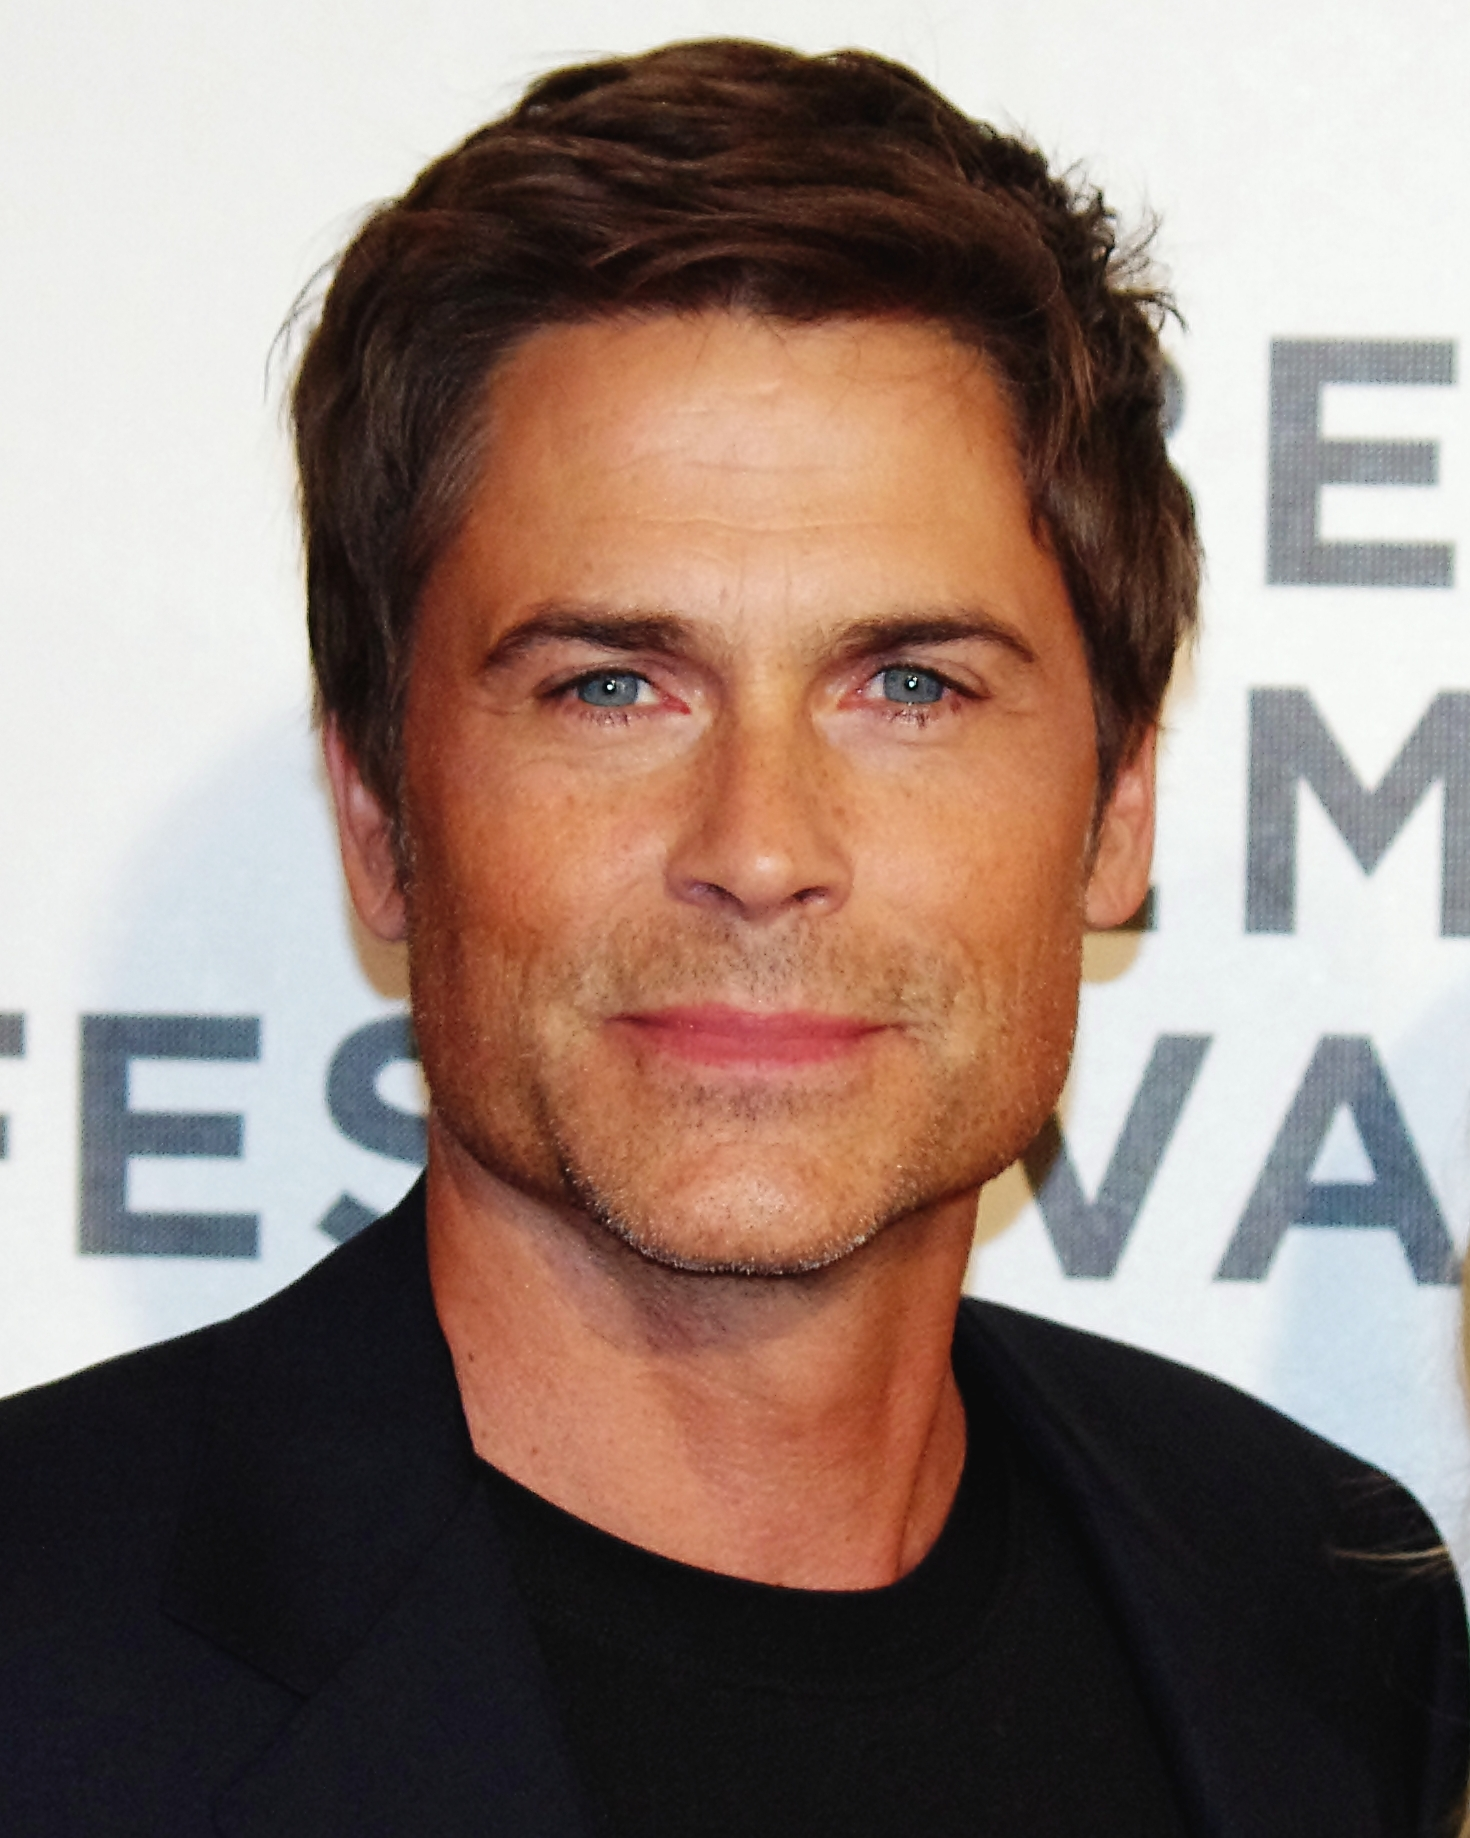 The 53-year old son of father Charles D. Lowe and mother Barbara Hepler, 187 cm tall Rob Lowe in 2017 photo